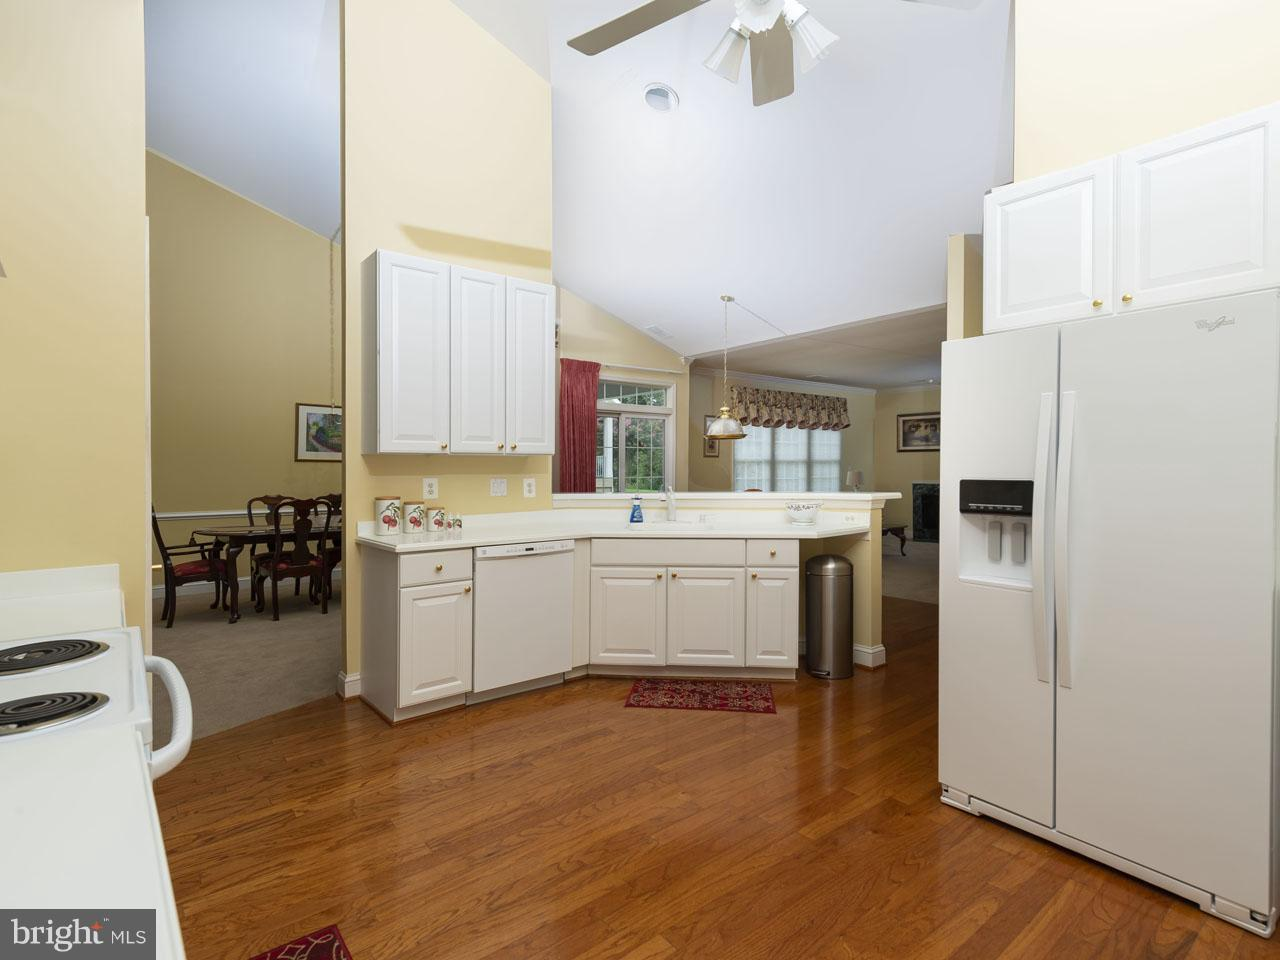 1005040466-300638082327-2021-07-22-06-45-09        Gainesville Delaware Real Estate For Sale   MLS# 1005040466  - Best of Northern Virginia